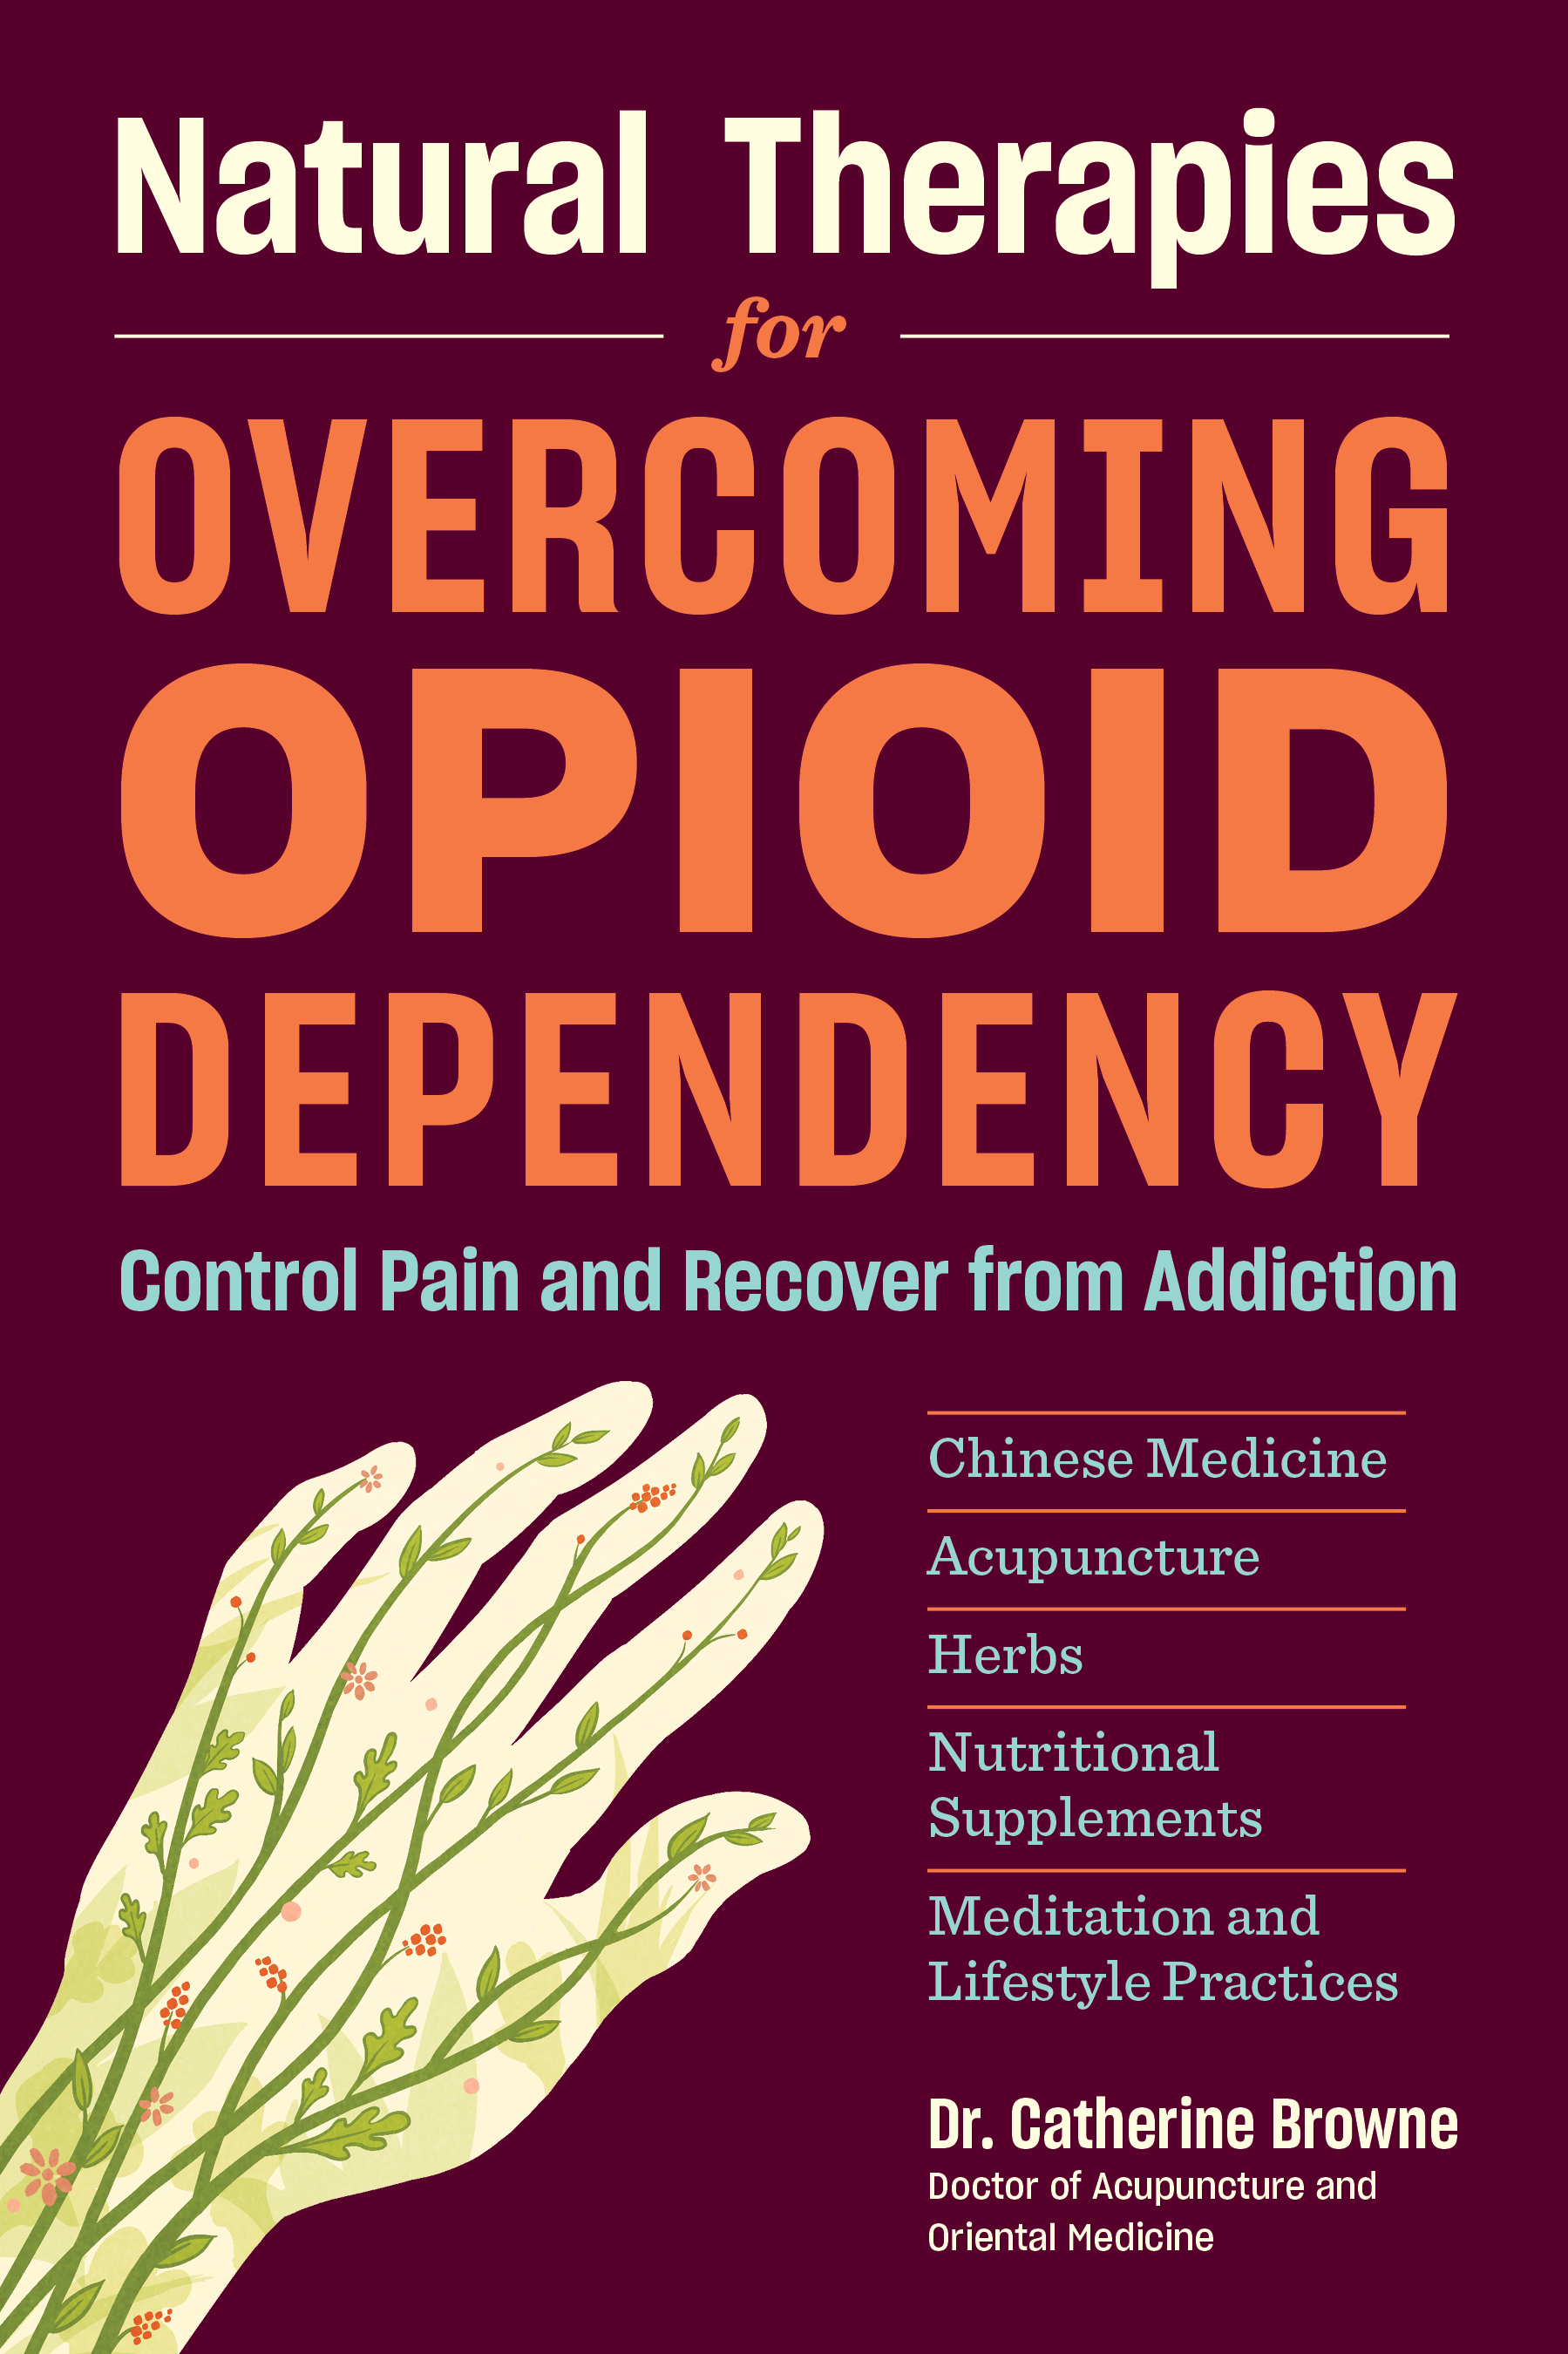 Natural Therapies for Overcoming Opioid Dependency Control Pain and Recover from Addiction with Chinese Medicine, Acupuncture, Herbs, Nutritional Supplements & Meditation and Lifestyle Practices - Catherine Browne, DAOM